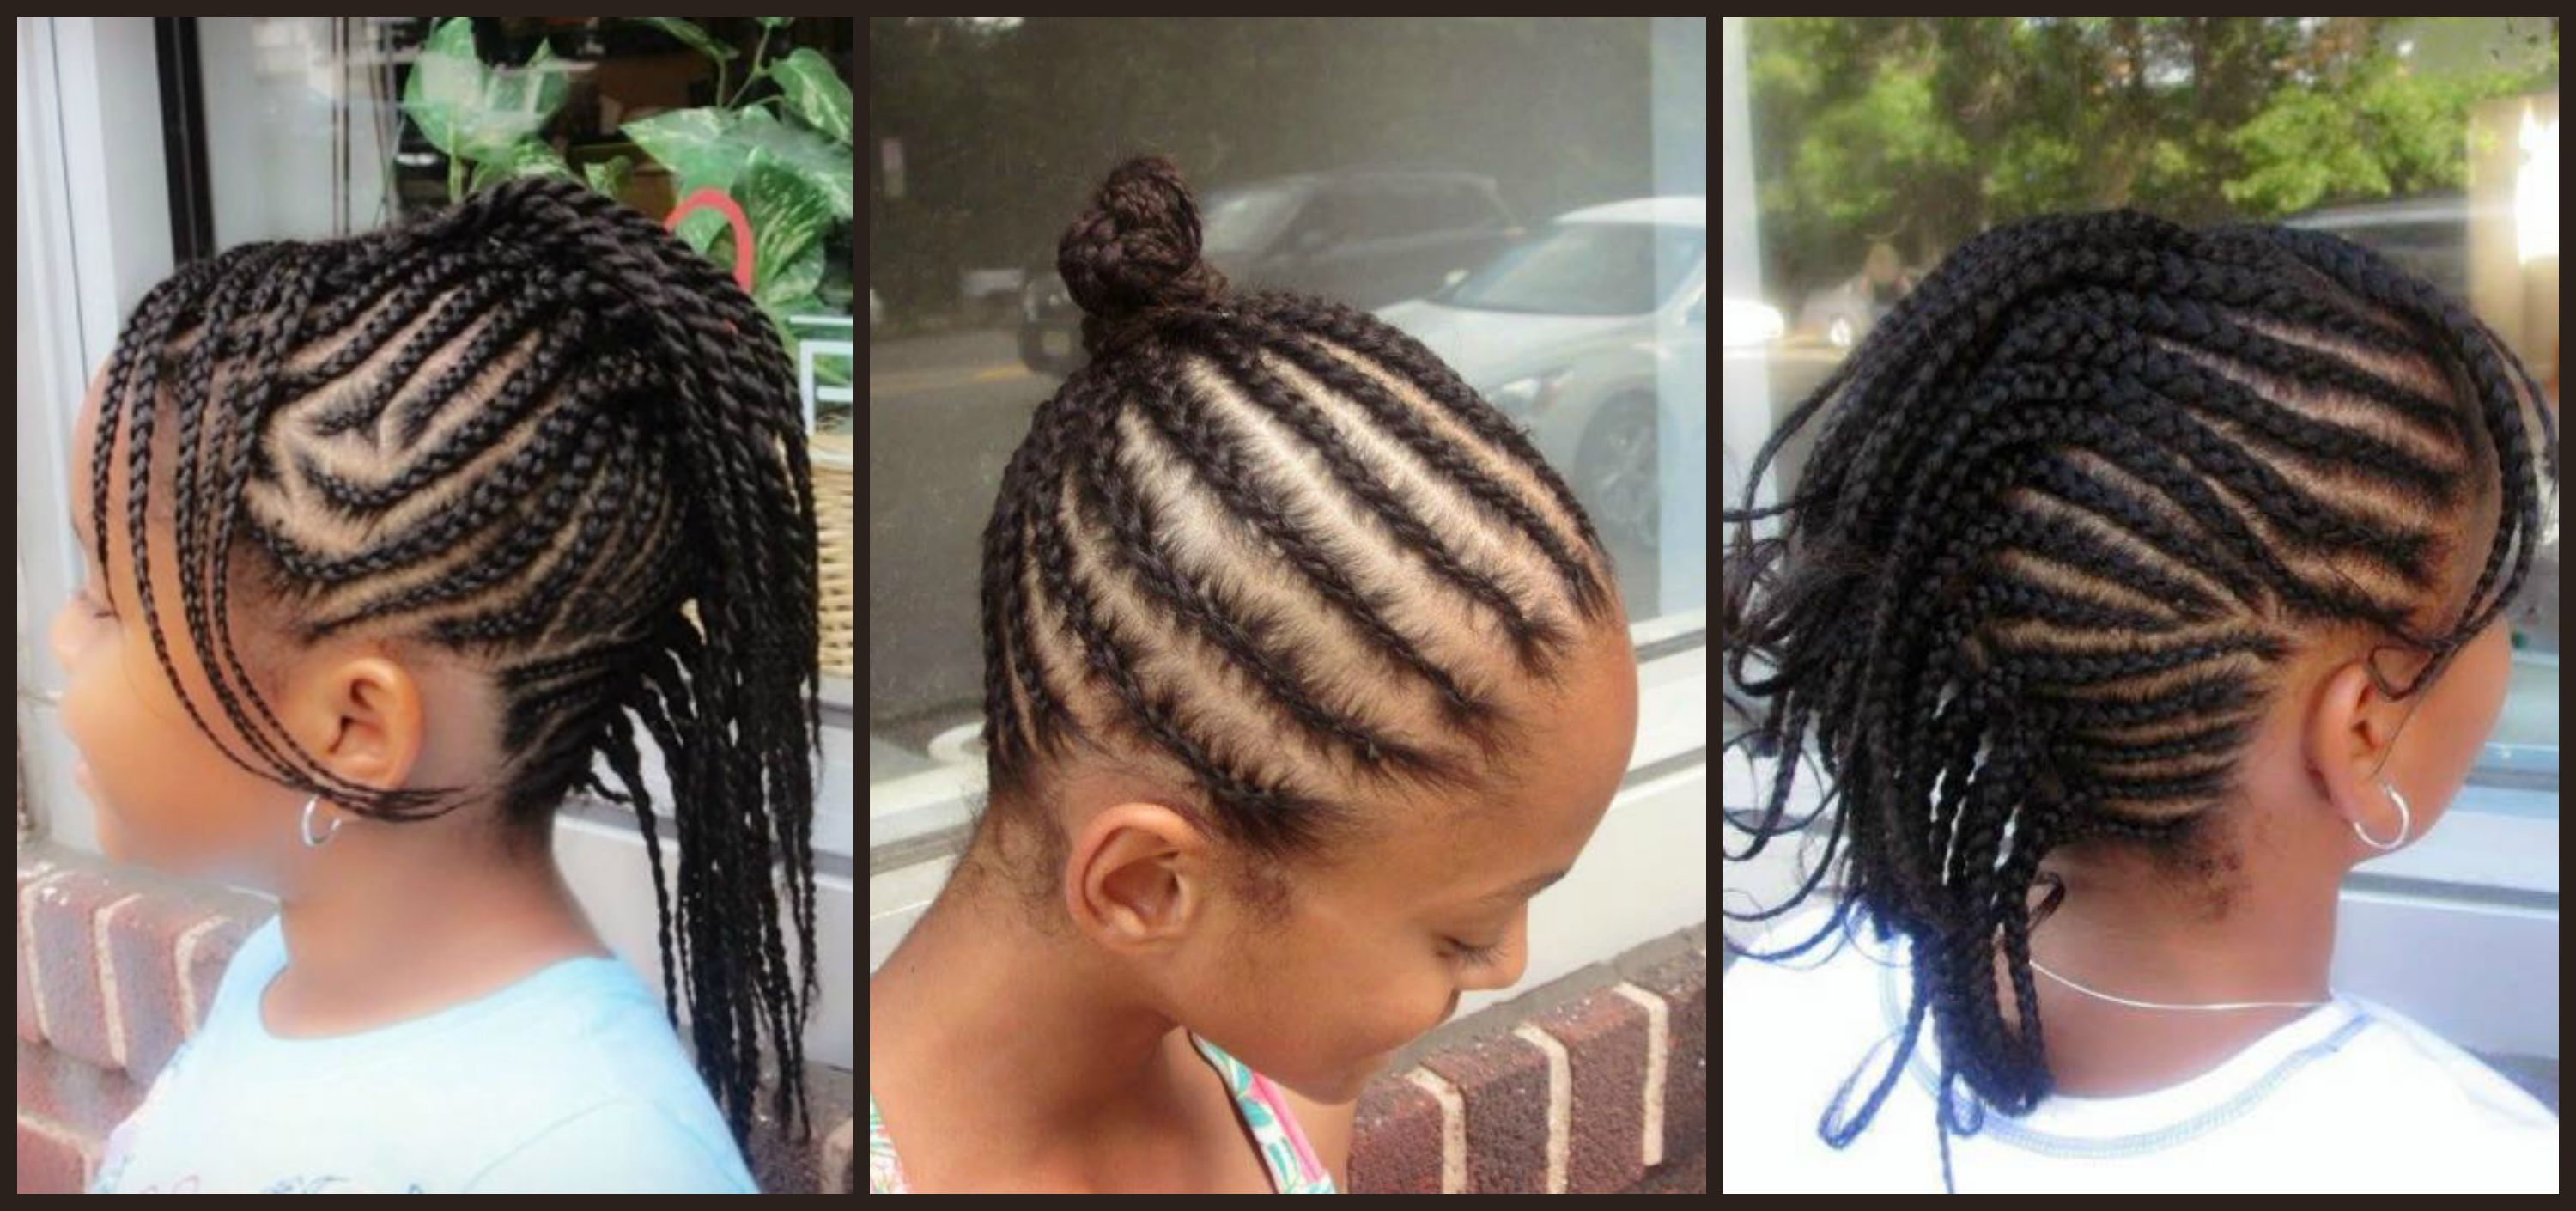 hair braiding pictures styles get twisted hair studio in teaneck nj 07666 1410